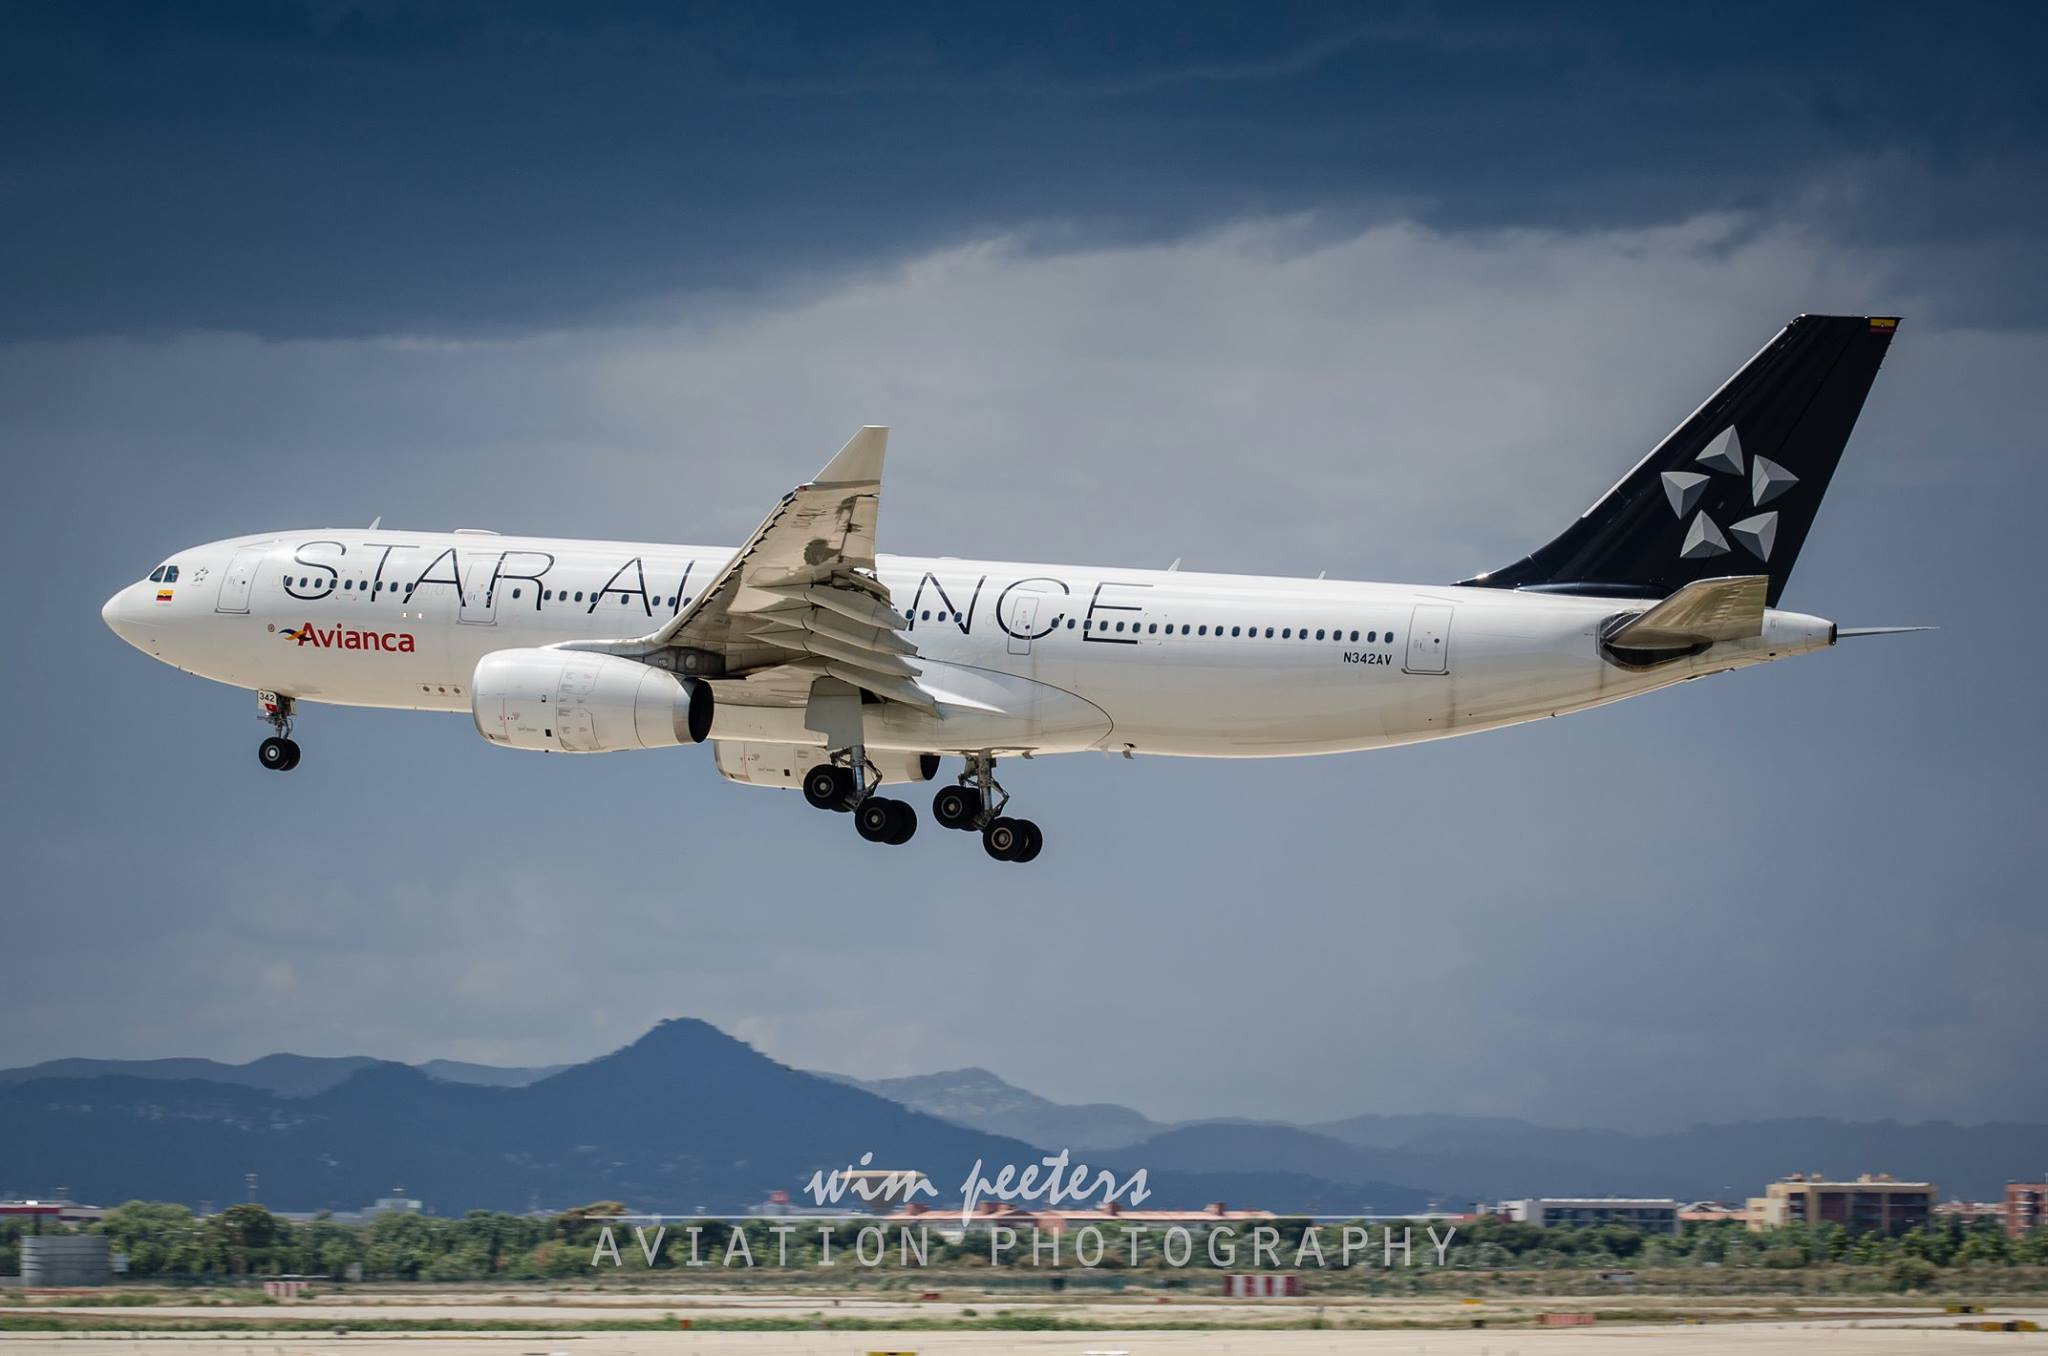 Avianca Airbus A330 - Star Alliance - copyright Wim Peeters